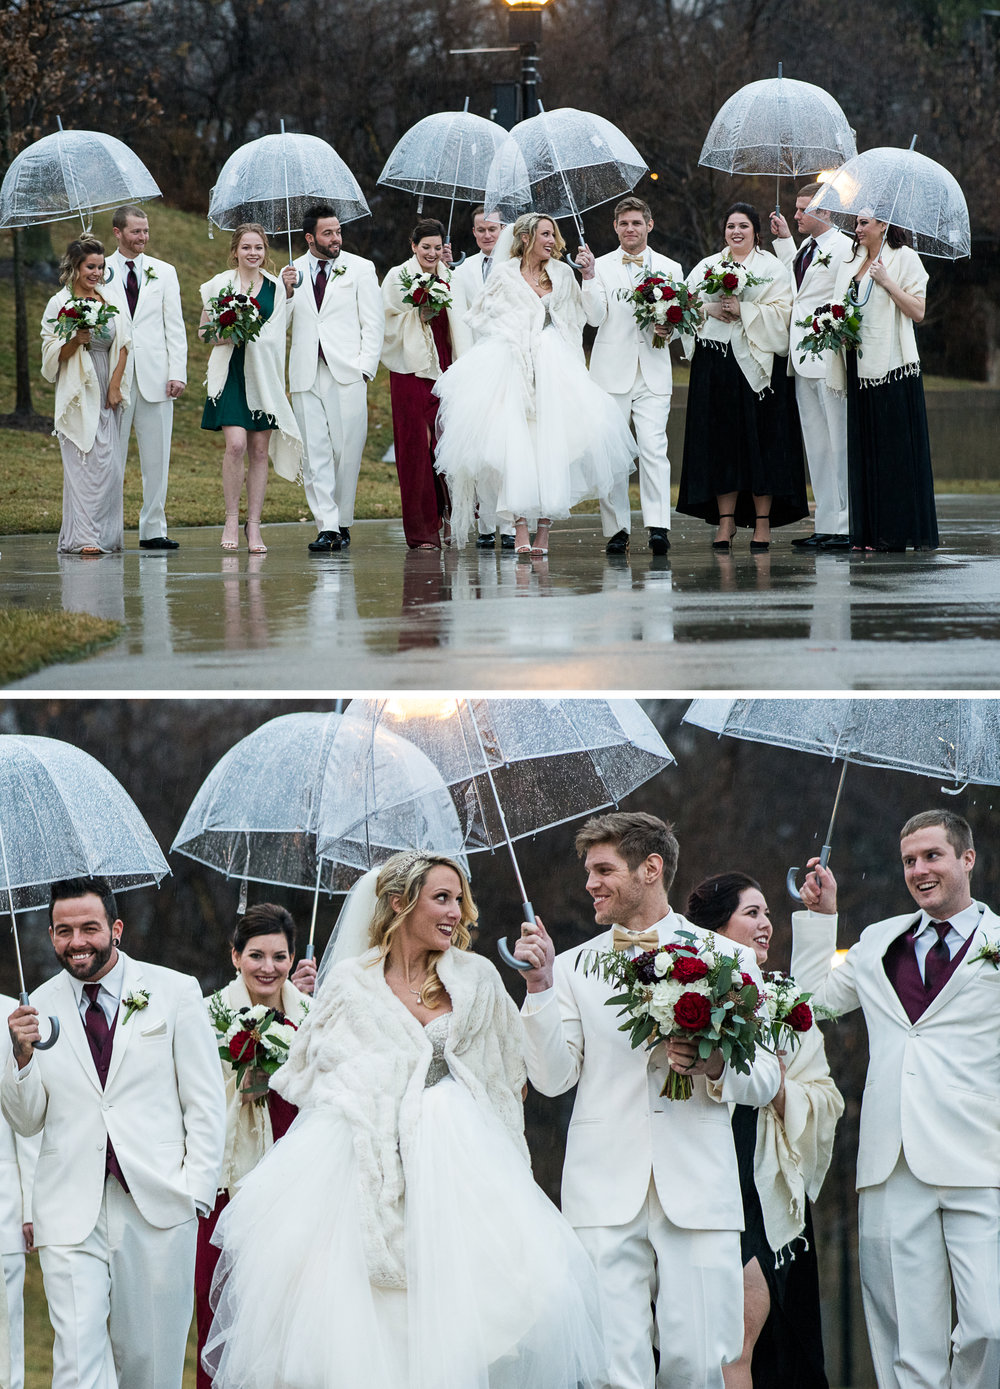 Brett Loves Elle Photography, Columbus Wedding Photographers, Ohio Wedding Photography, North Bank Park, Columbus Ohio. Rainy Day Winter Wedding